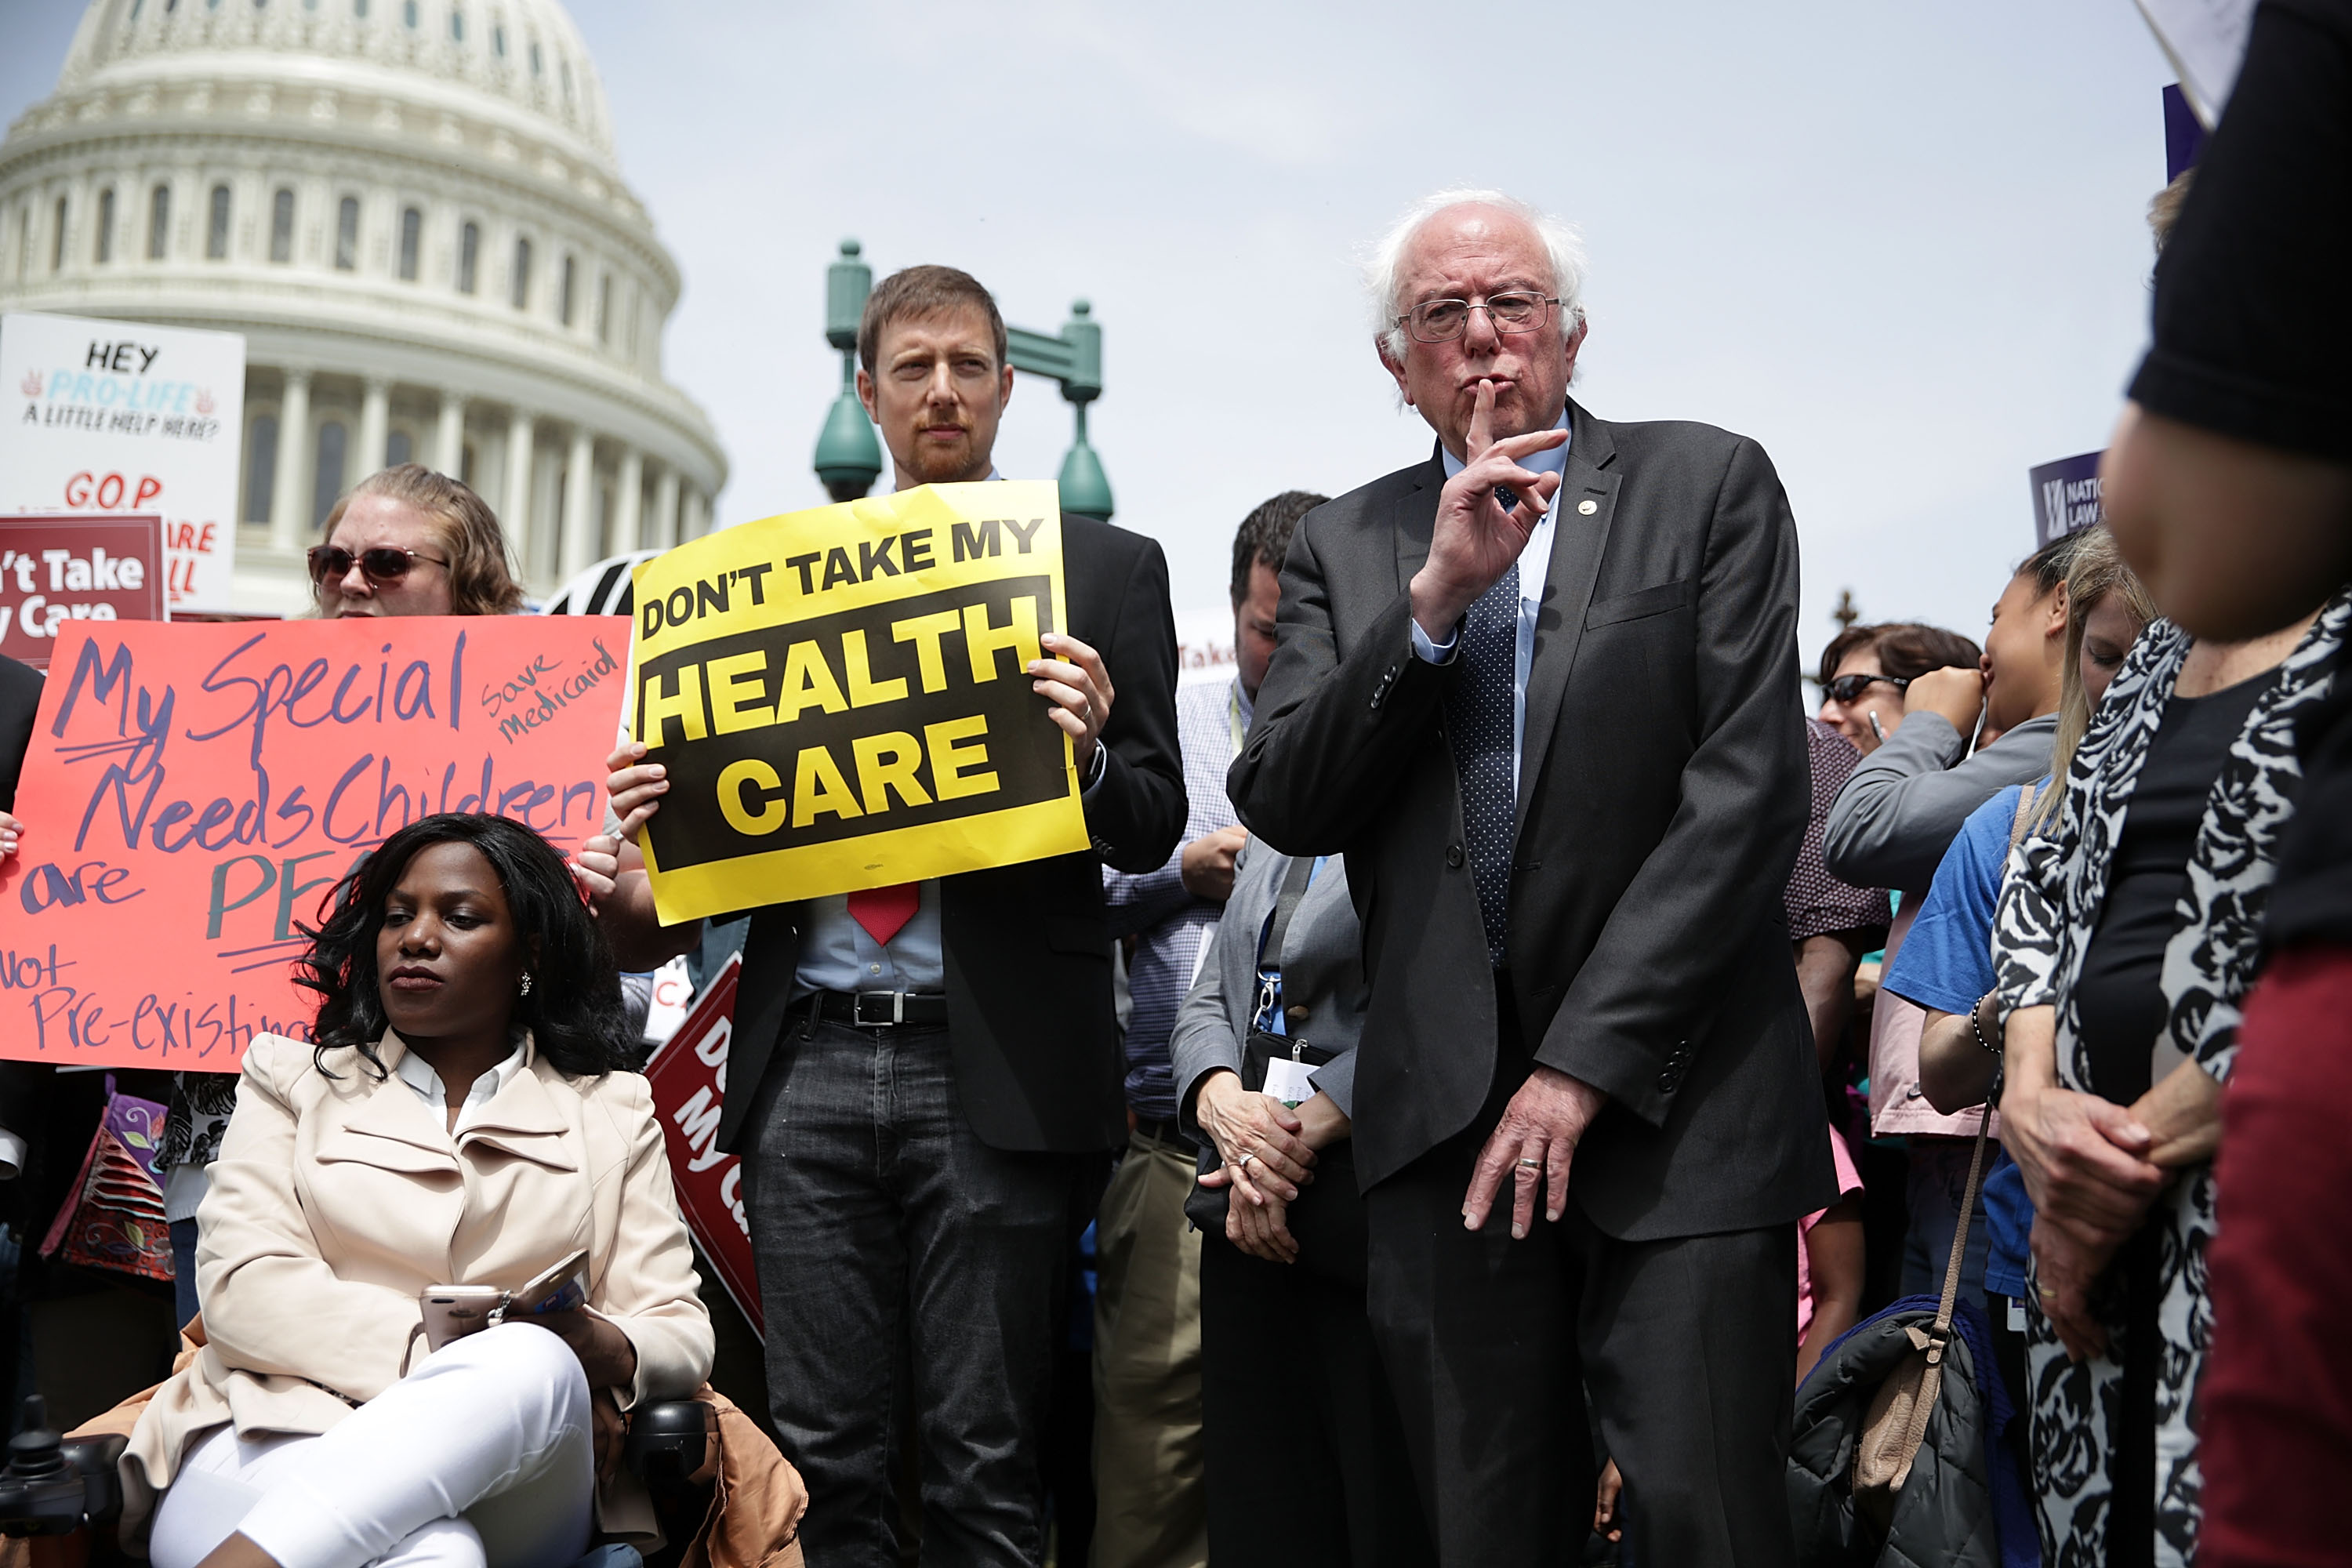 U.S. Sen. Bernie Sanders (I-VT) signals the crowd to quiet down for a speaker during a Stop 'Trumpcare' rally May 4, 2017 in front of the Capitol in Washington, DC. Congressional Democrats joined activists for a rally to urge not to replace Obamacare, also known as the Affordable Care Act. (Photo by Alex Wong/Getty Images)